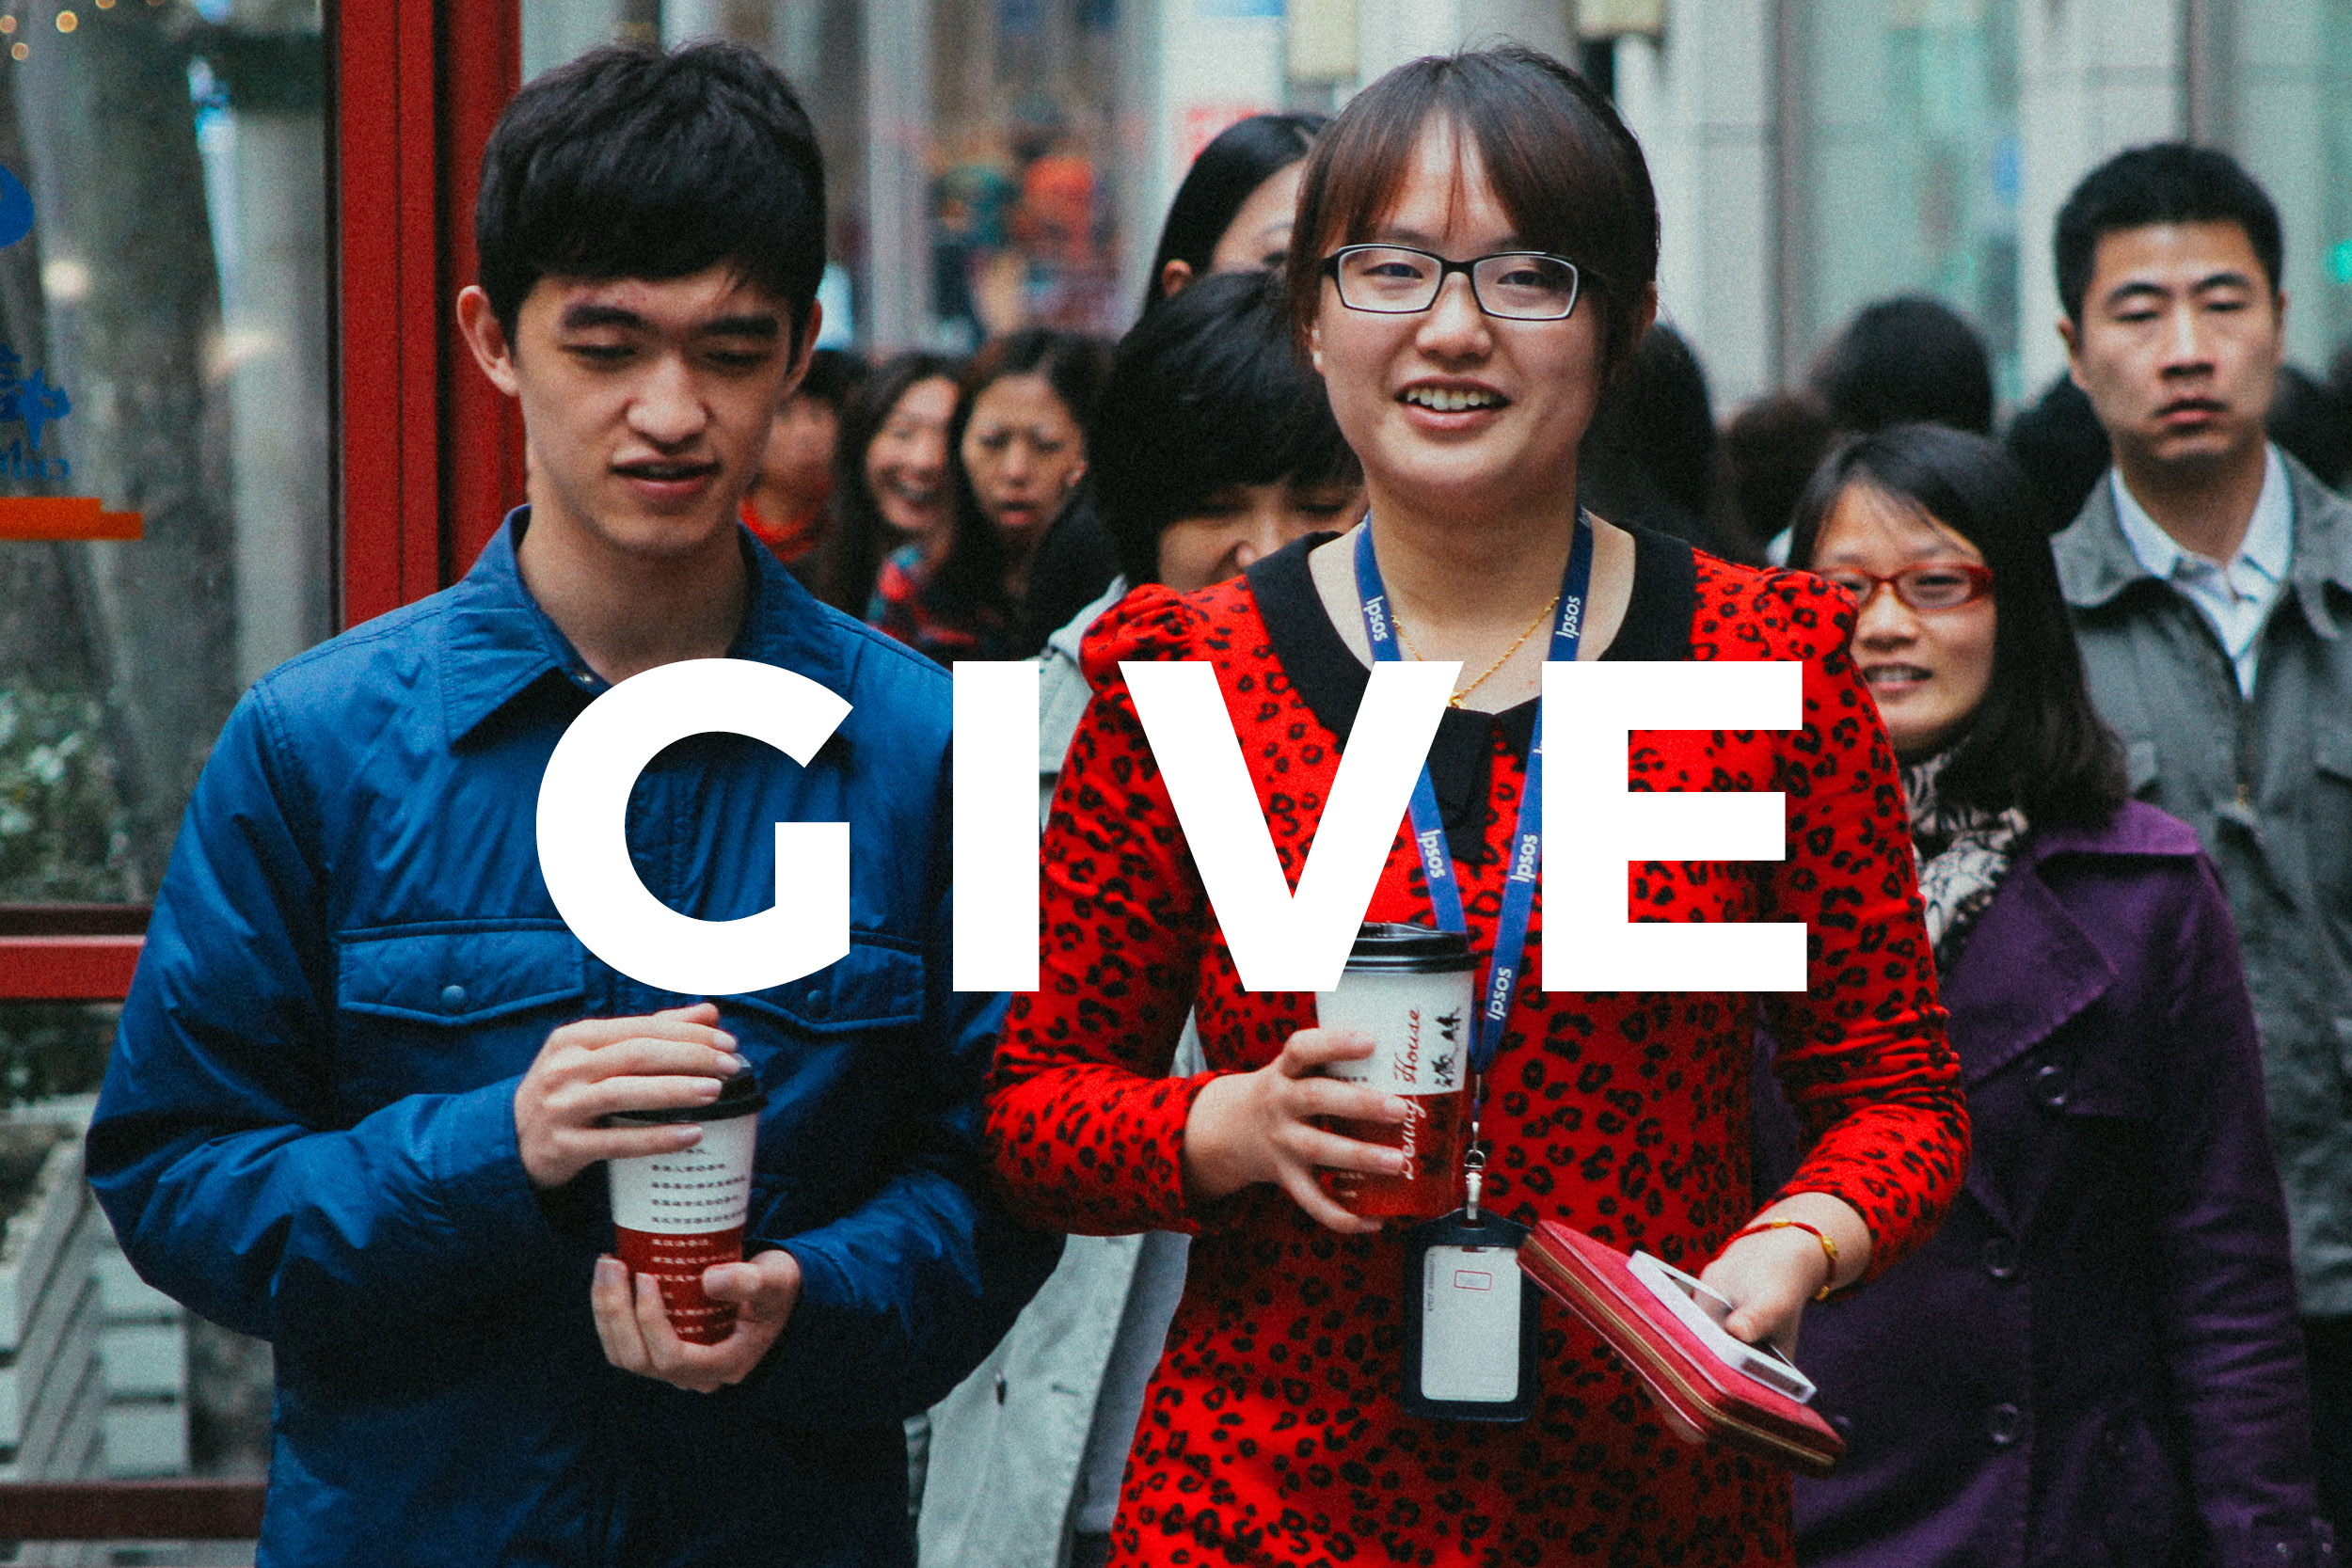 - Your generosity will make it possible for future leaders to be transformed by God's grace. There are two easy ways to give.Contribute securely by bank draft or credit card here.Send a check to our Cultivate Leadership office: Cultivate Leadership. 4513 Barwyn Ct. Plano, TX 75093